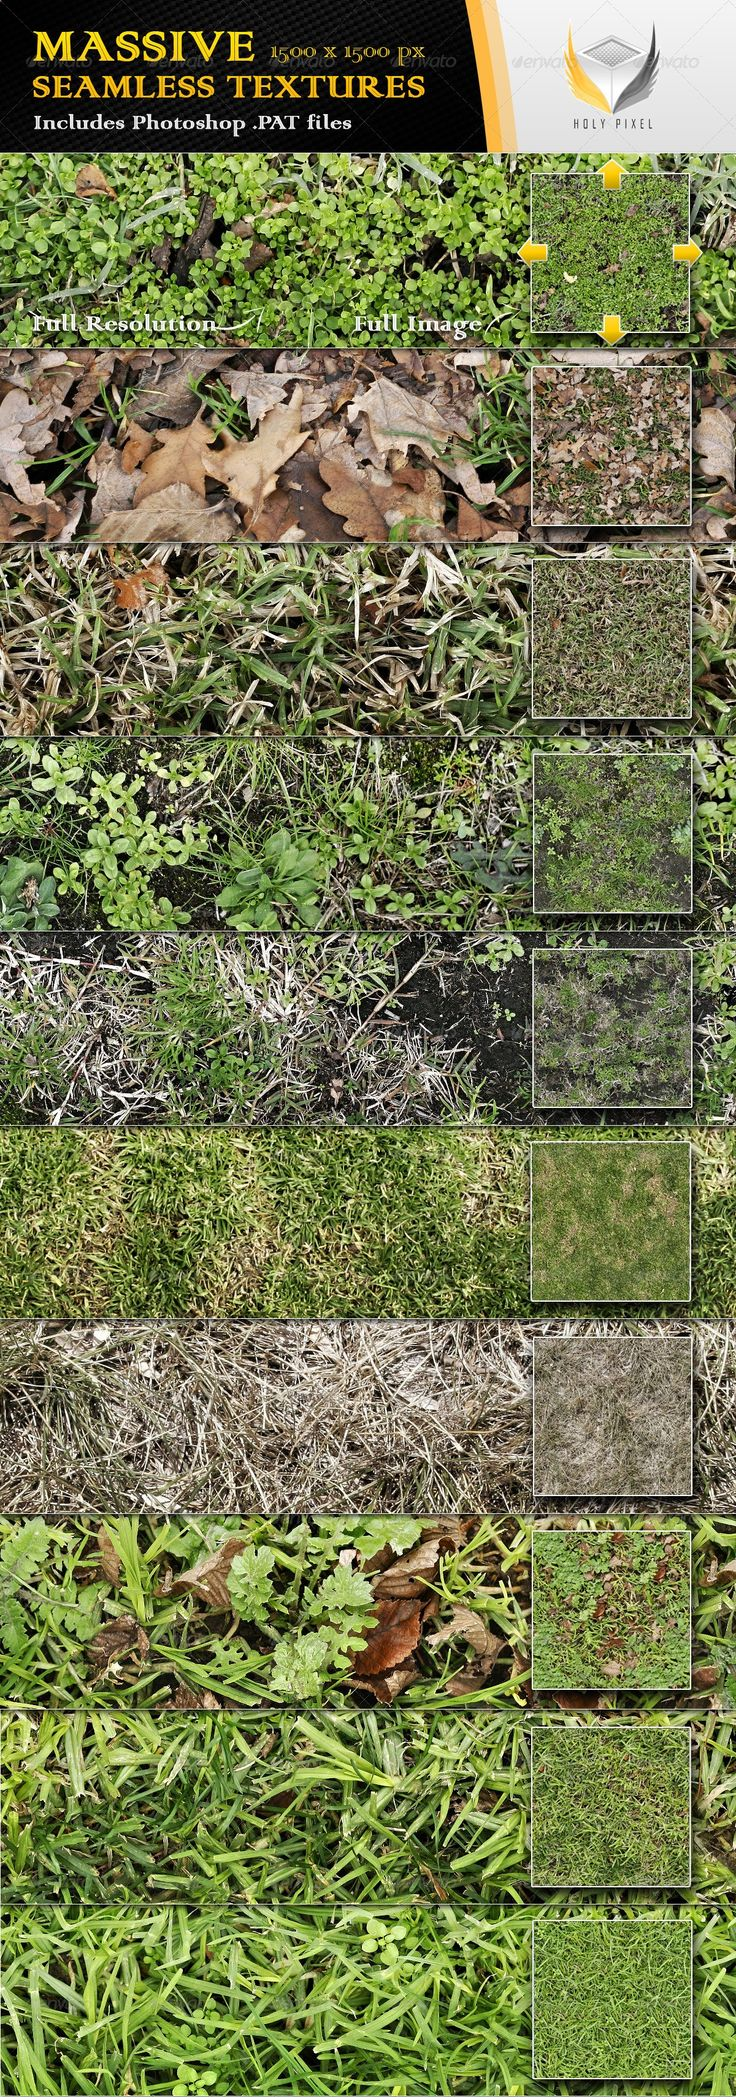 Textures nature elements vegetation dry grass dry grass - 10 Seamless Grass Textures 2 Graphicriver All 10 Textures In This File Have Been Designed At The Massive Resolution Of 1500 1500px So That You Can Scale